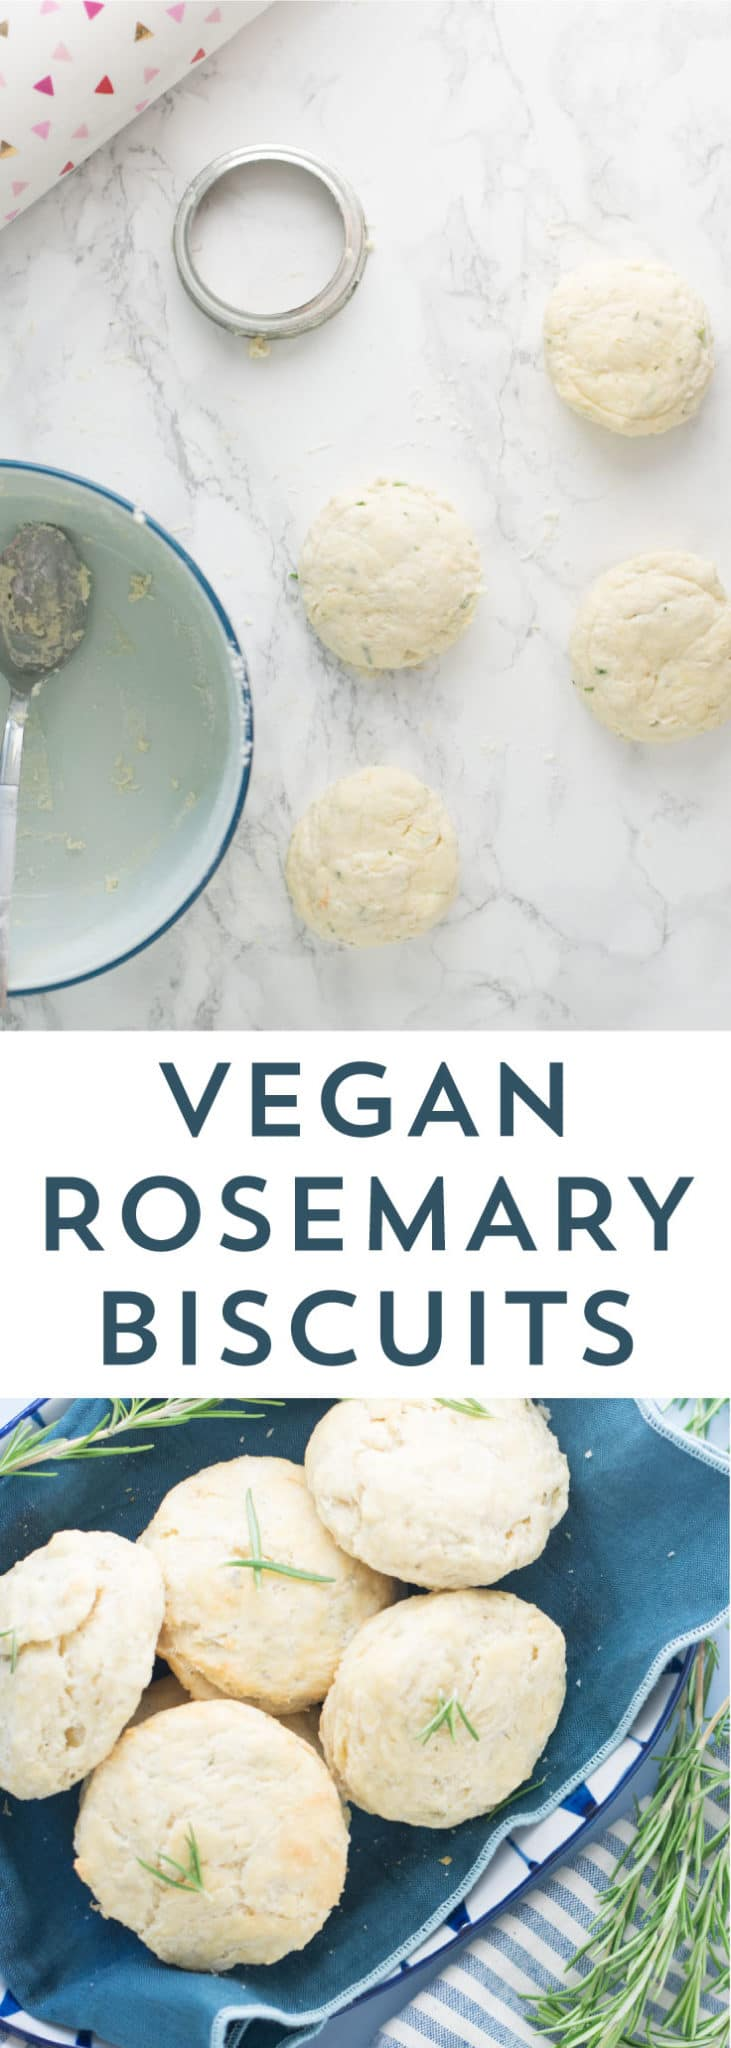 Rosemary Biscuits -- Not only are these biscuits vegan, but they are the perfect savory addition to any meal of the day. - mindfulavocado